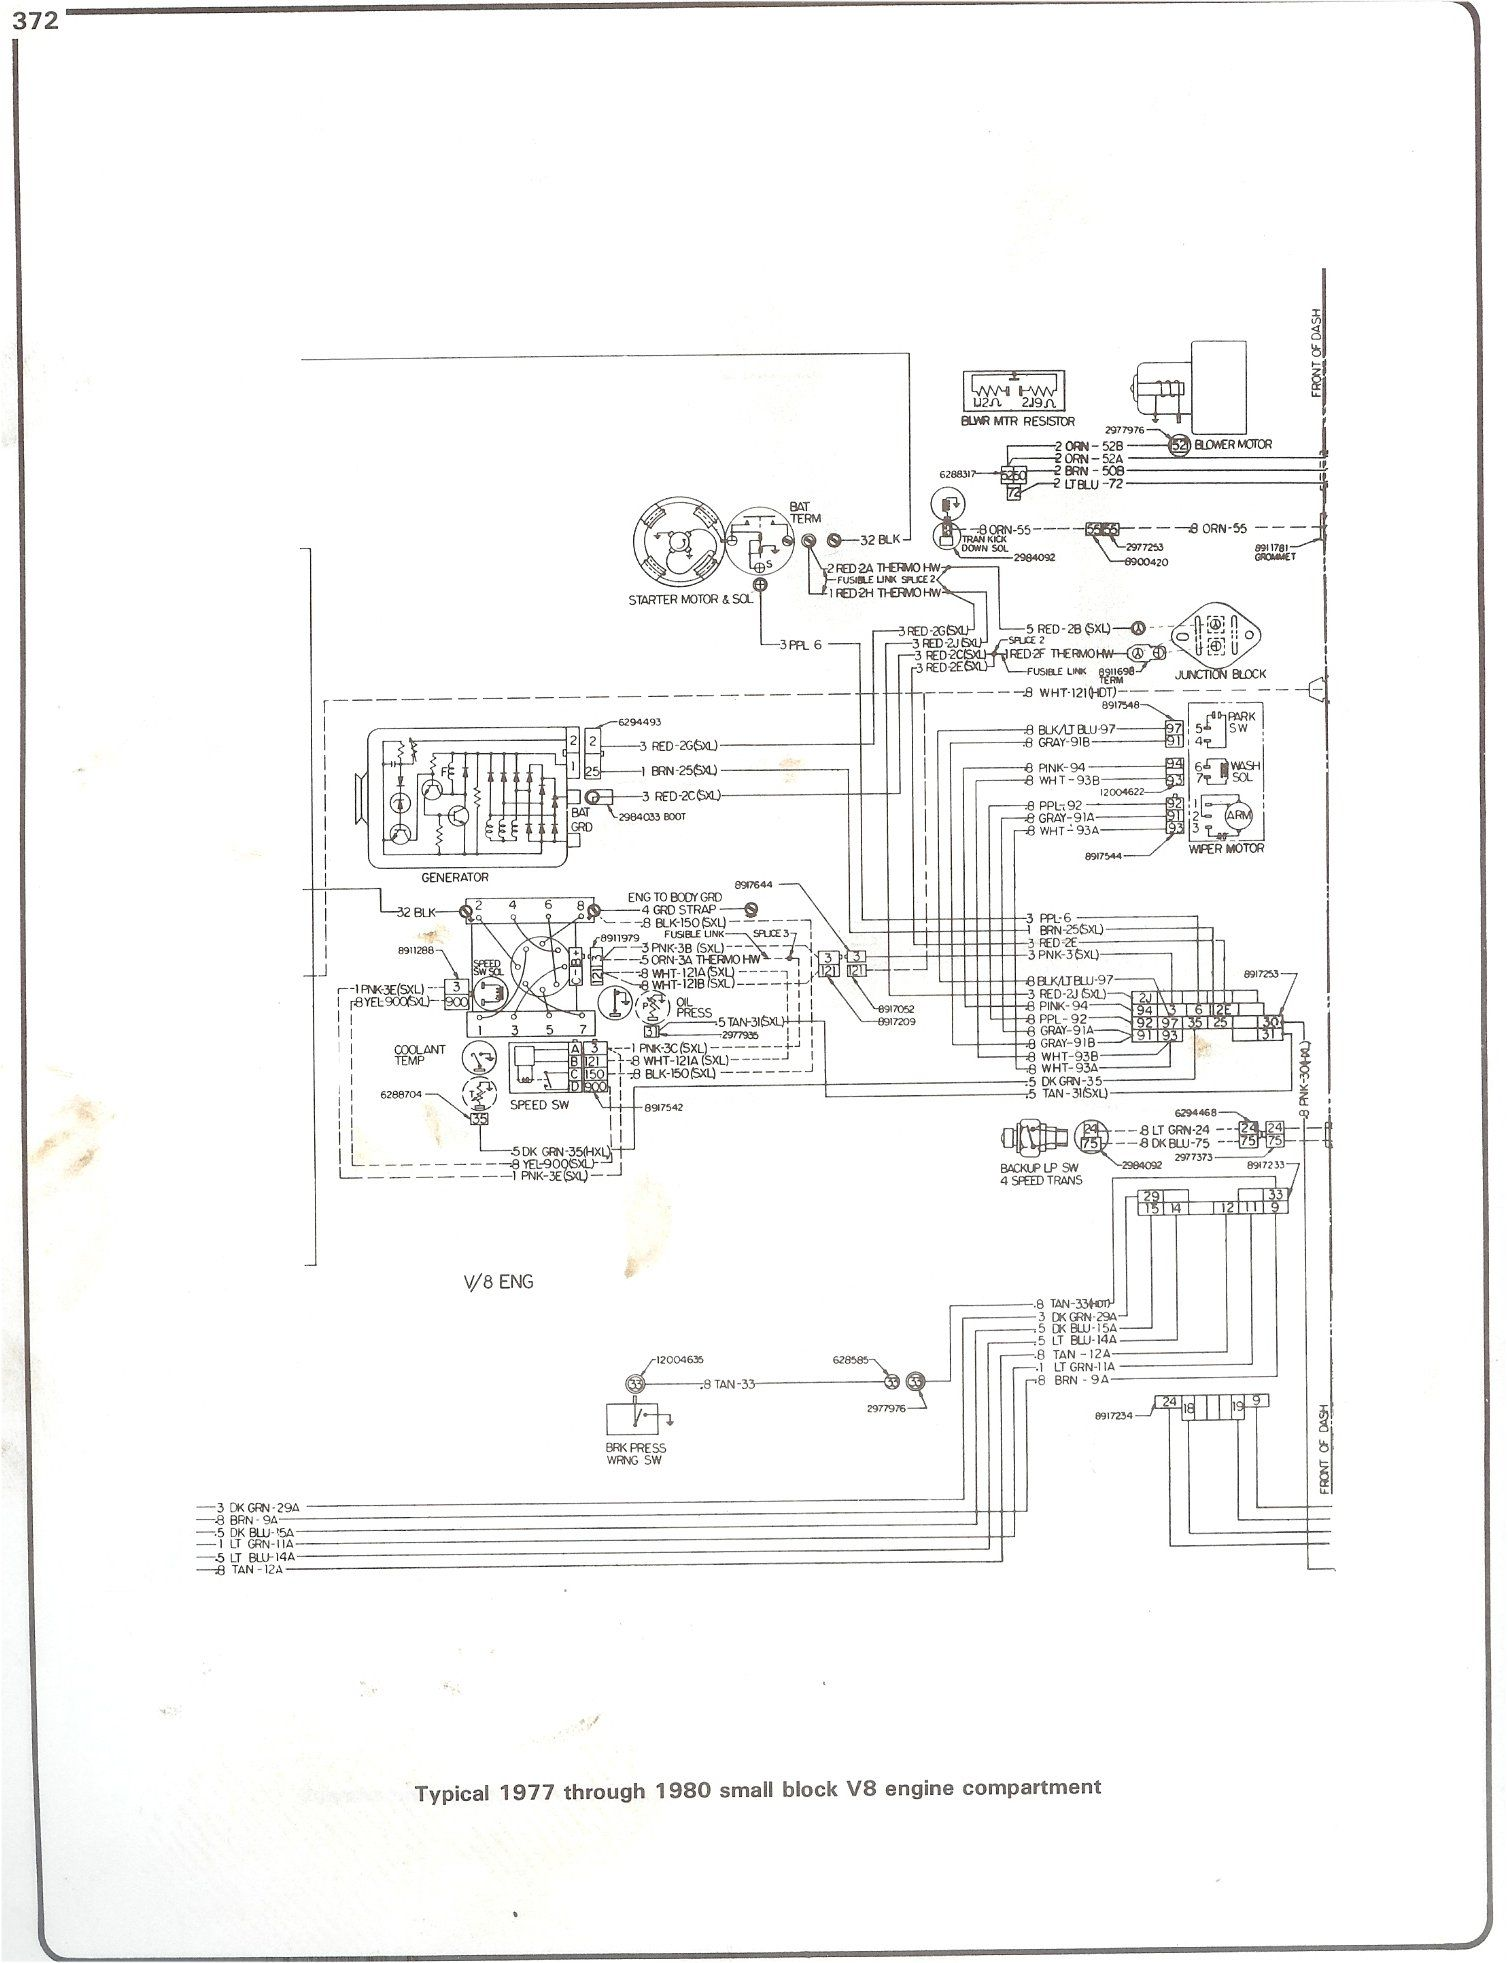 85 chevy truck wiring diagram chevy truck wiring diagram http 85 chevy truck wiring diagram chevy truck wiring diagram http ccuart Images